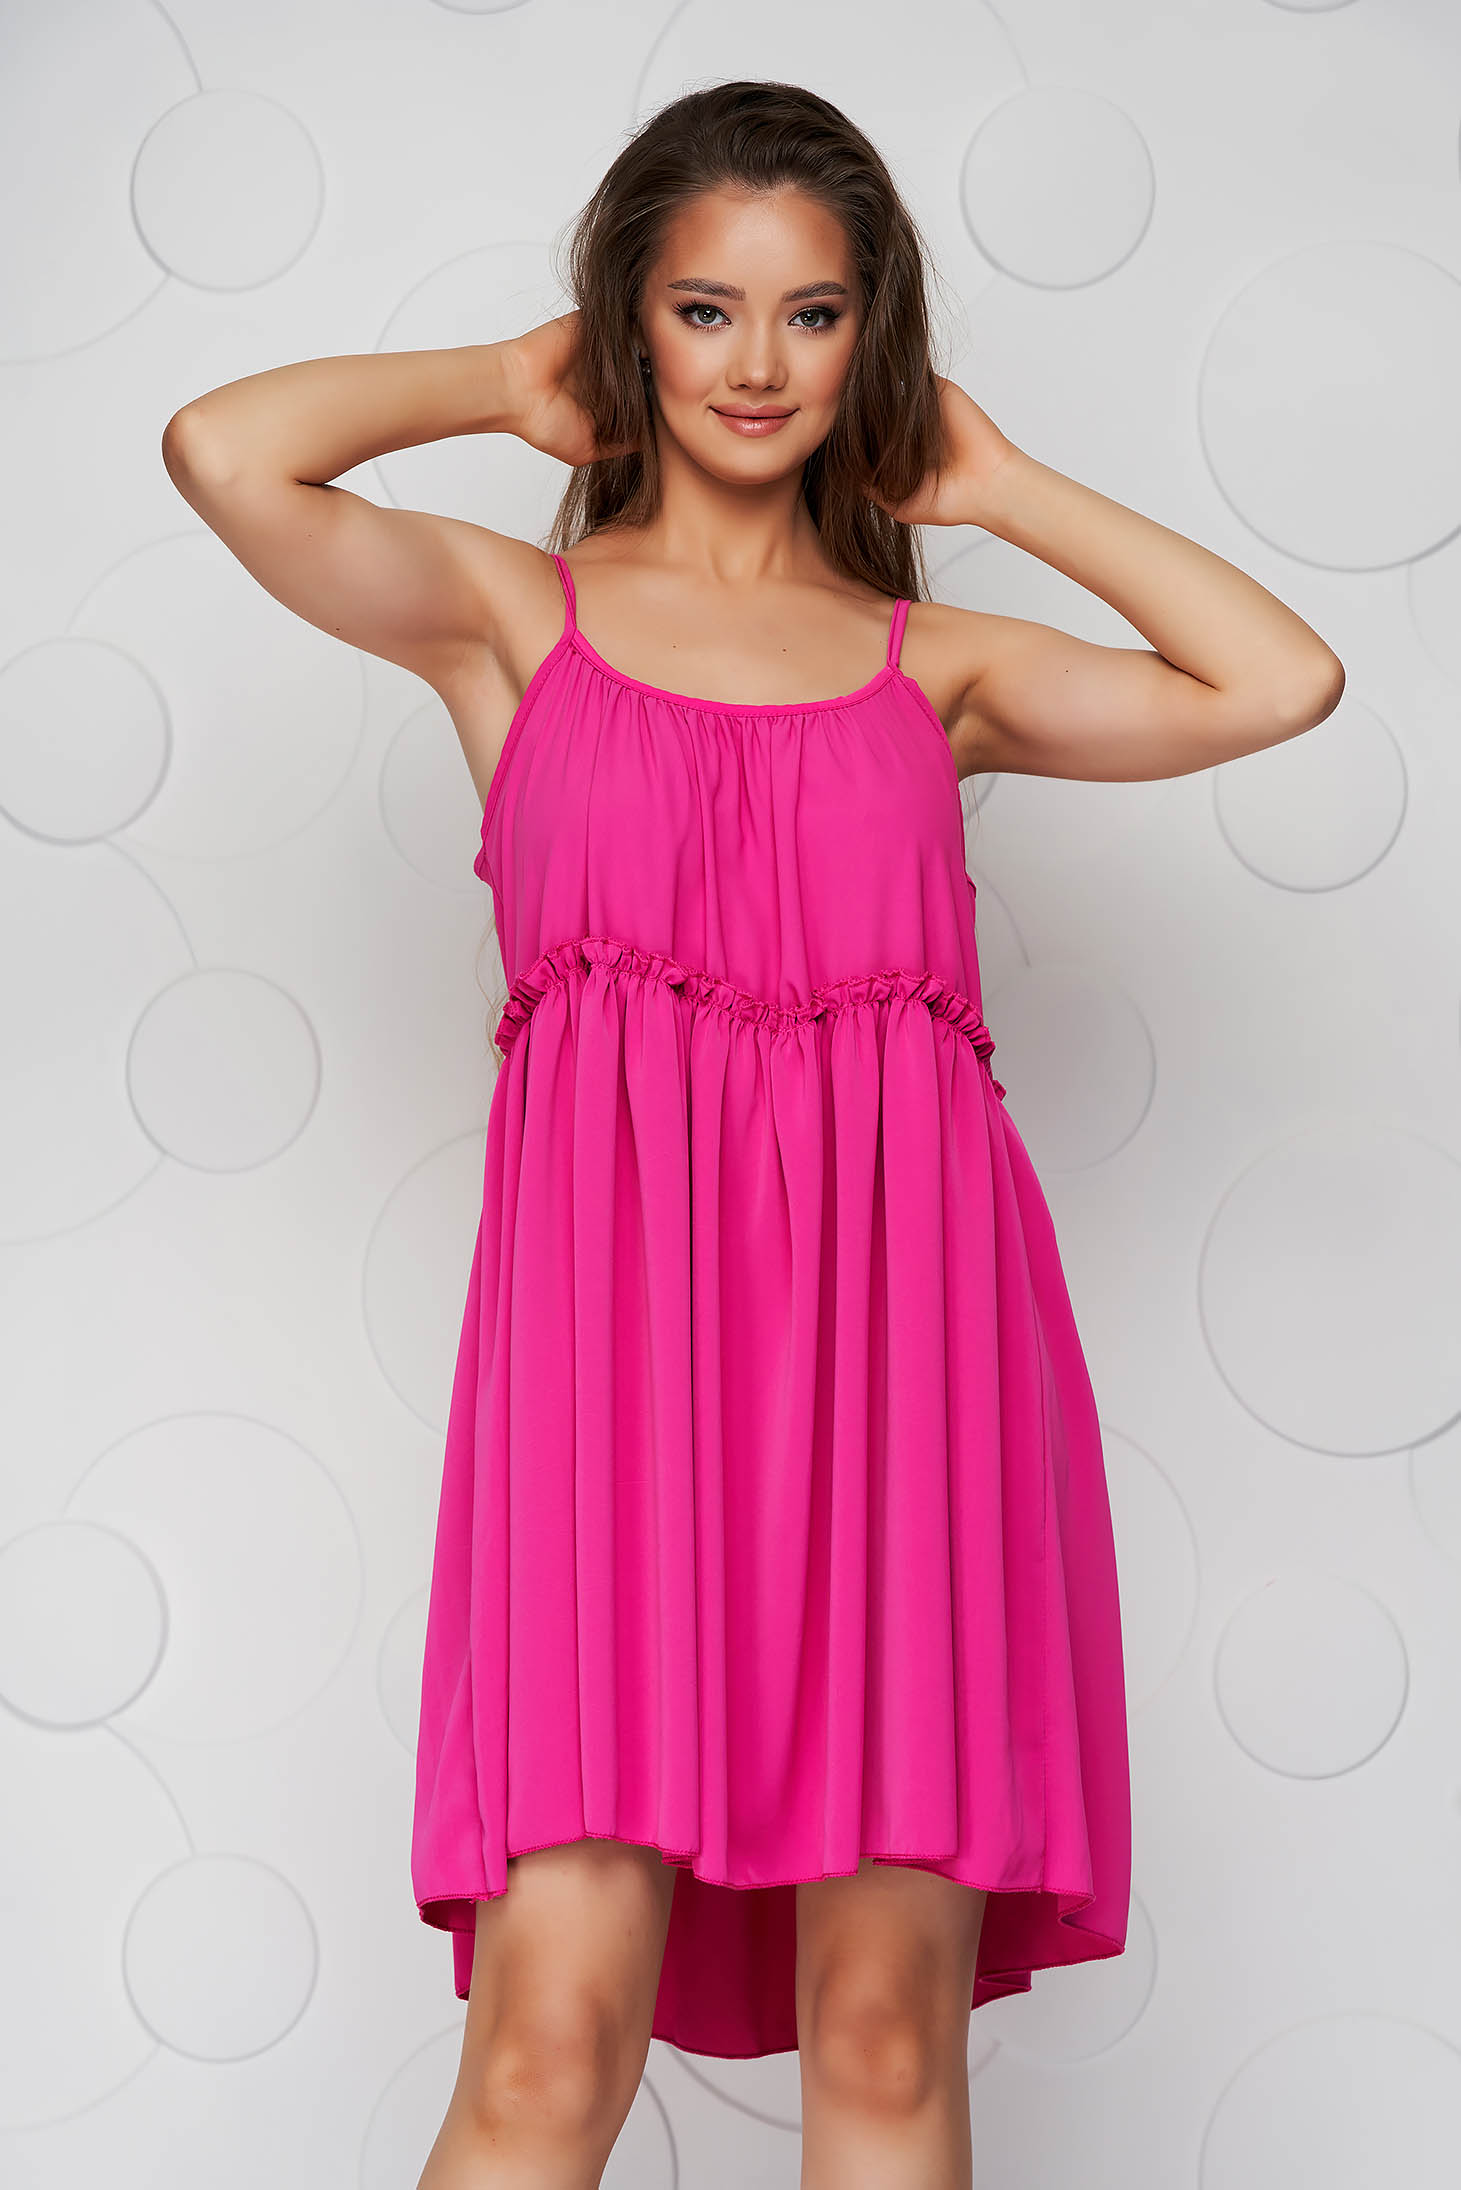 Pink dress thin fabric loose fit with straps with rounded cleavage airy fabric